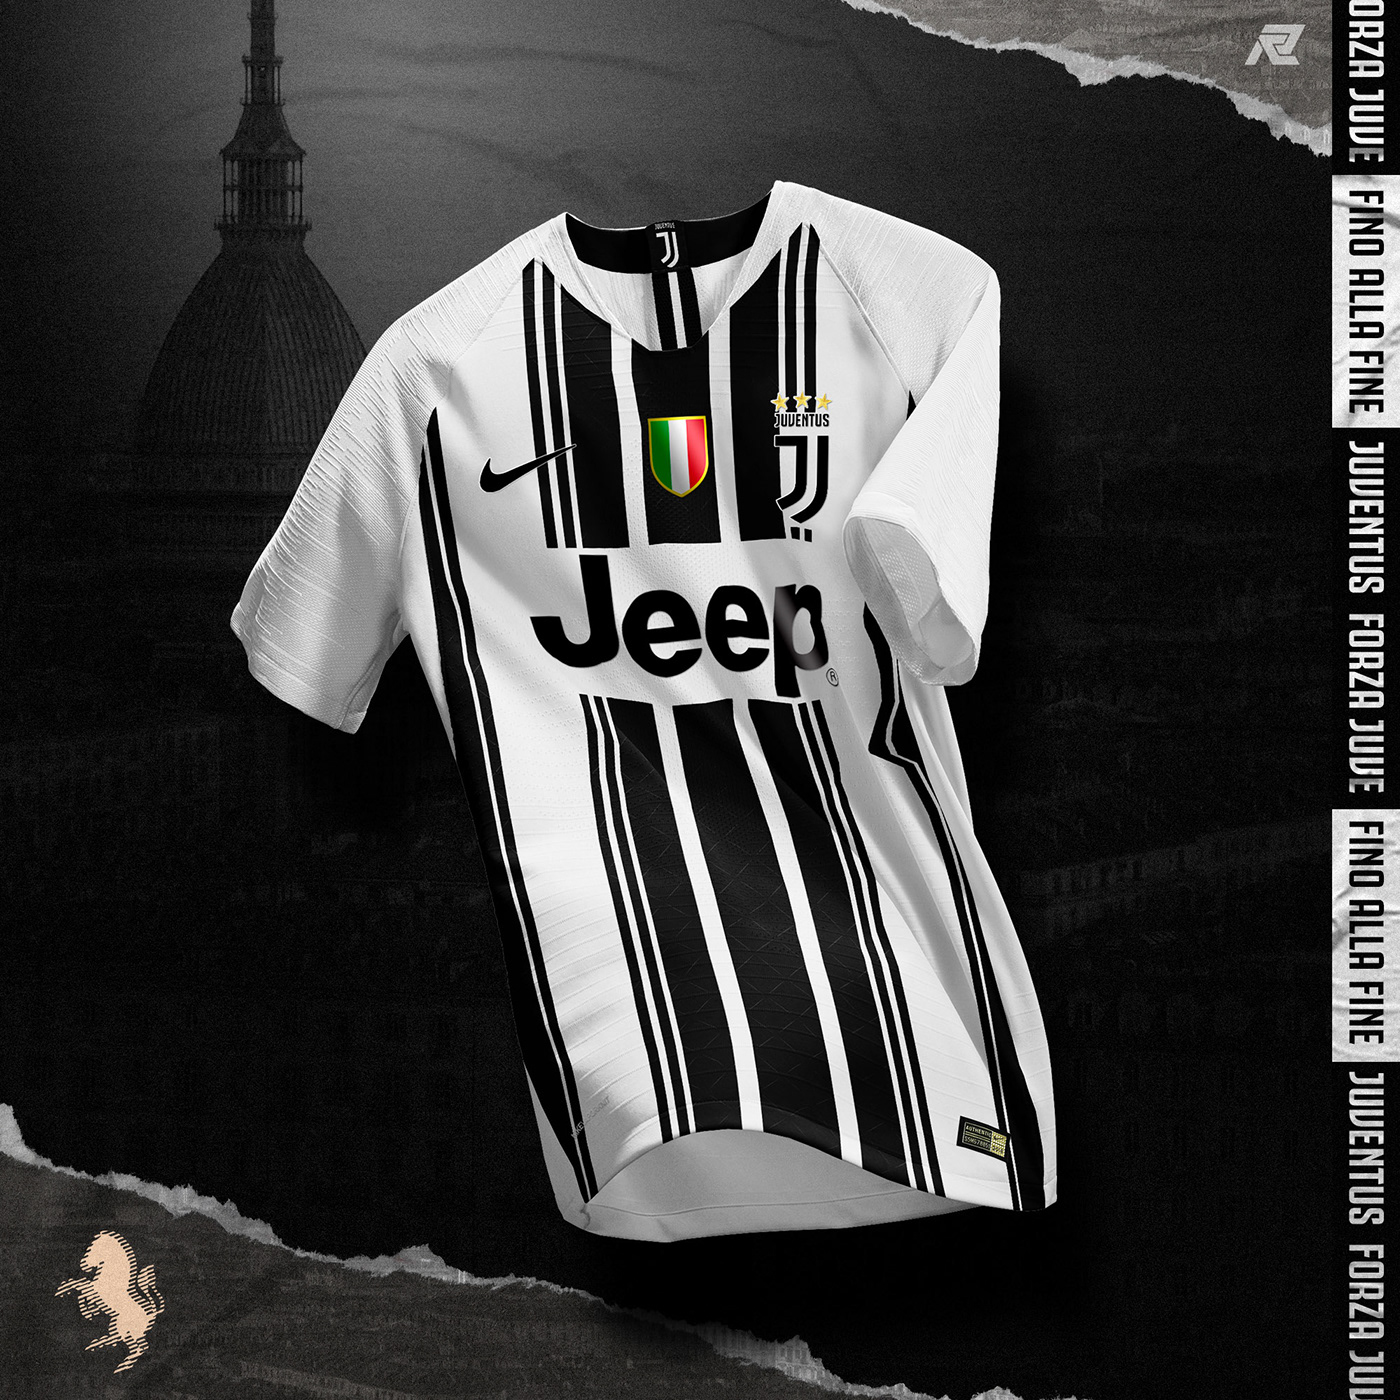 newest 1e4a9 df9b5 NIKE x JUVENTUS Concept on Behance